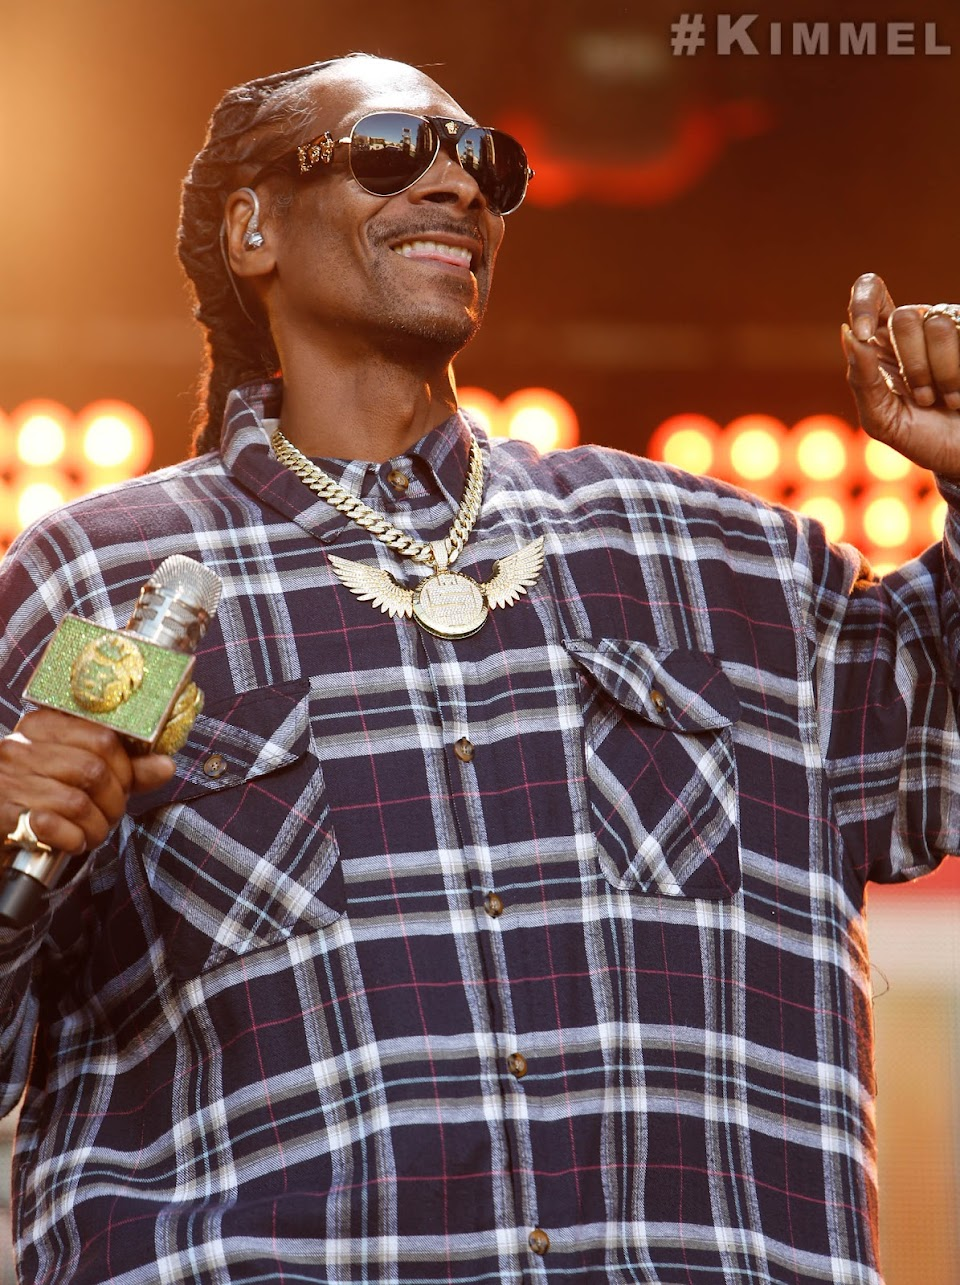 snoop dogg @SnoopDogg